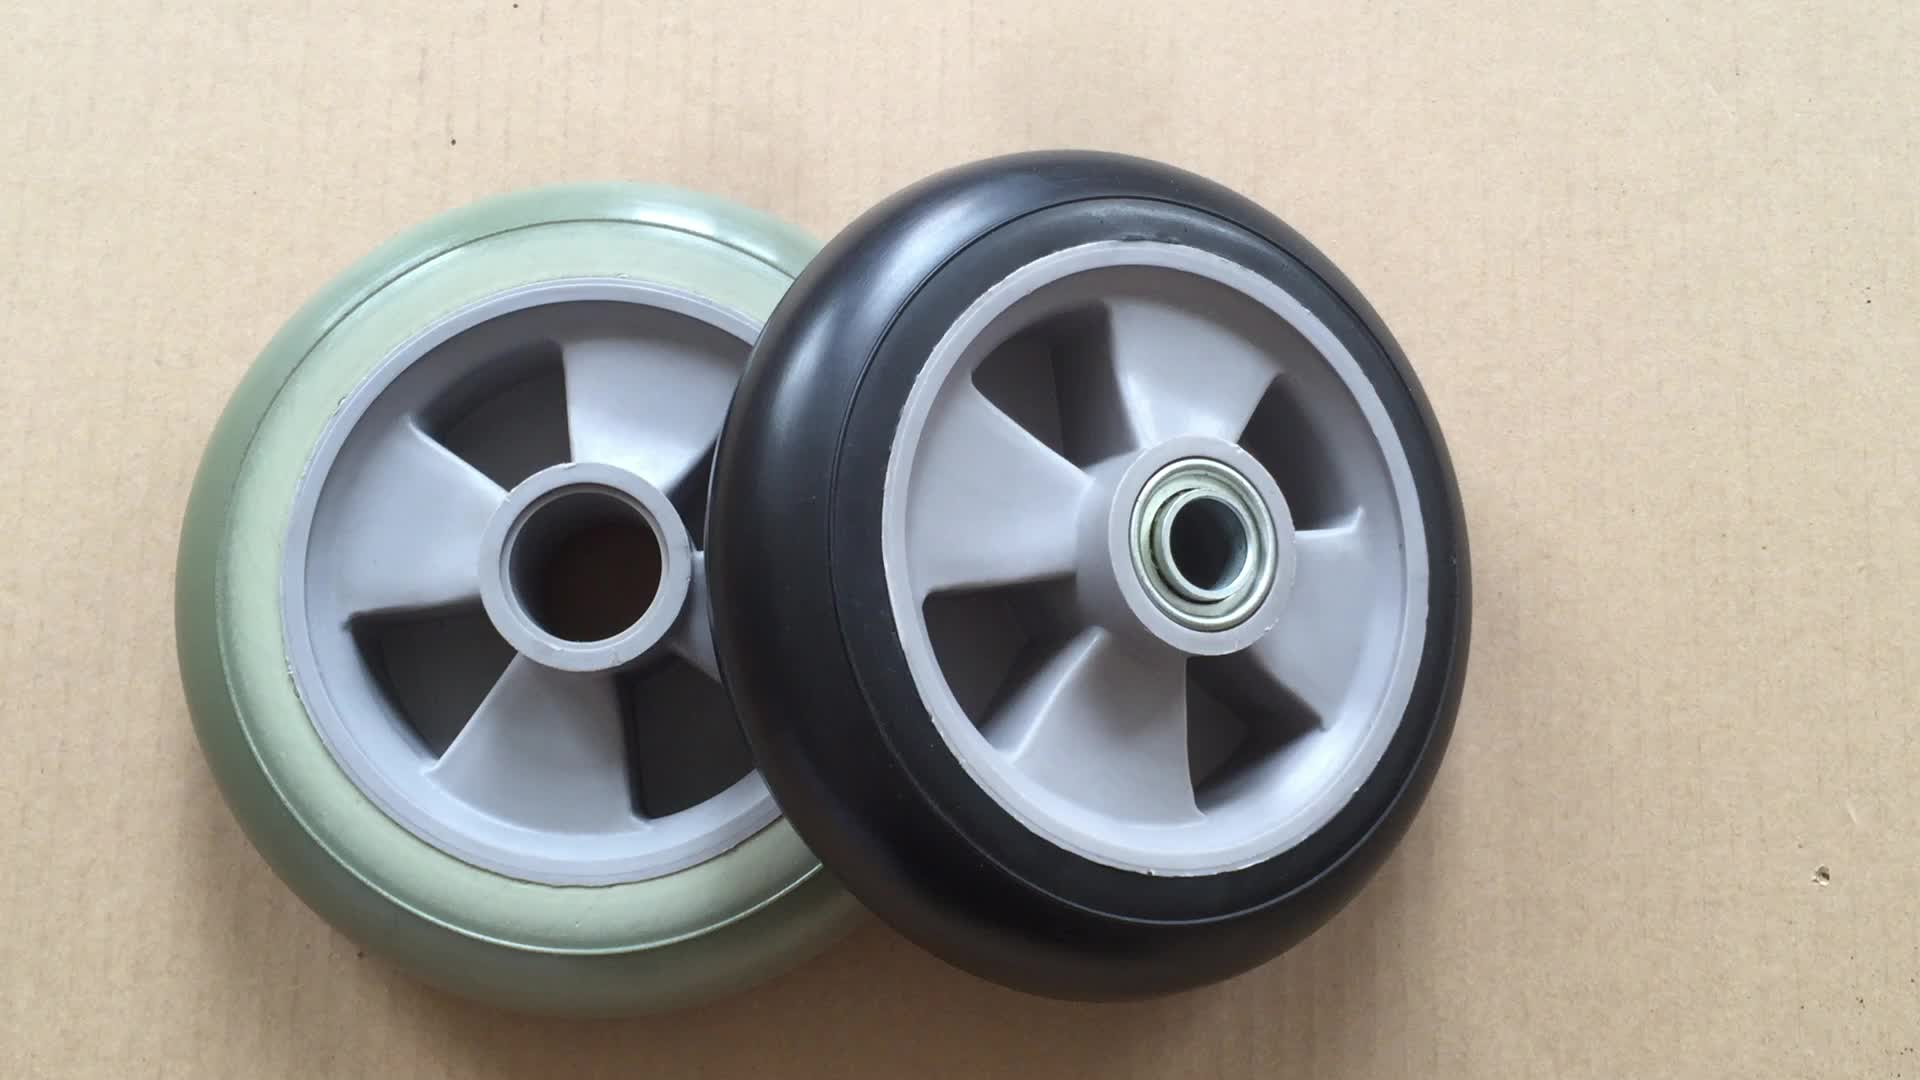 6 Inch PU Rubber Wheels/Tire for Kids Toys